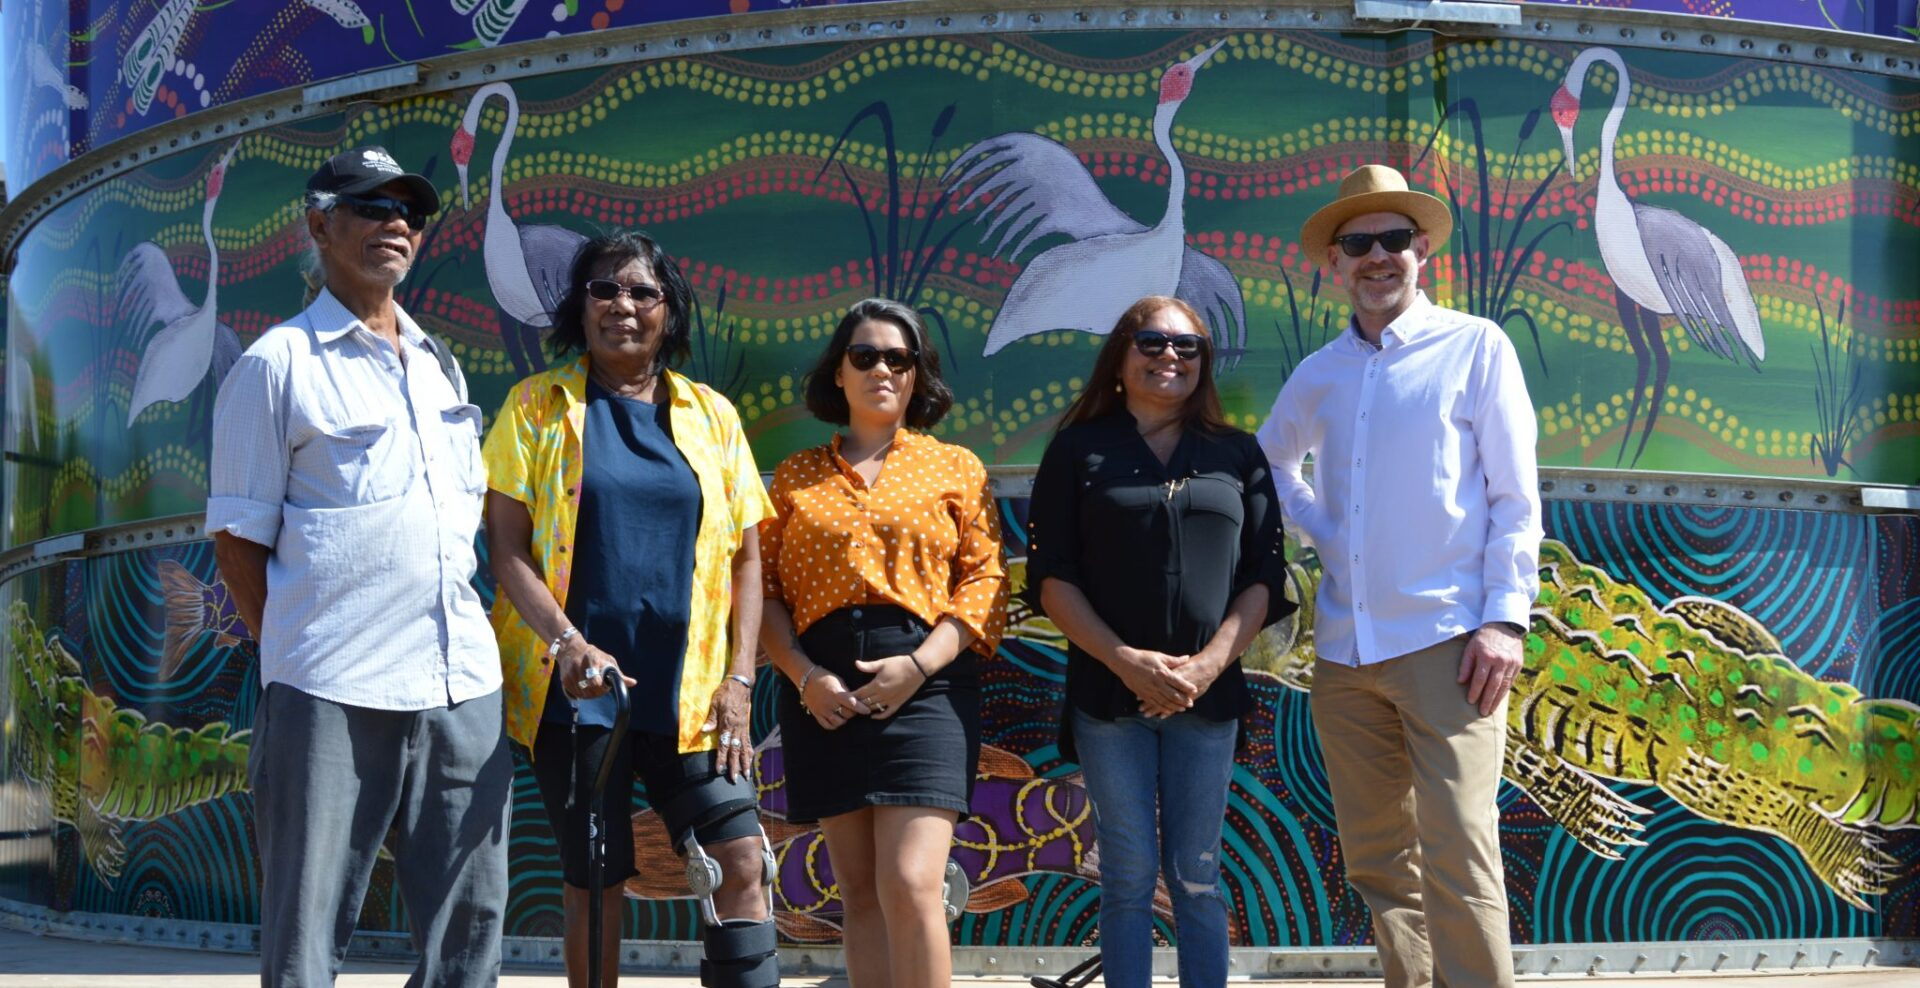 Larrakia Artists: Tibby Quall, Denise Quall, Tessna Dwyer and Norma Benger, with Rob Jager, VP Prelude Shell Australia.